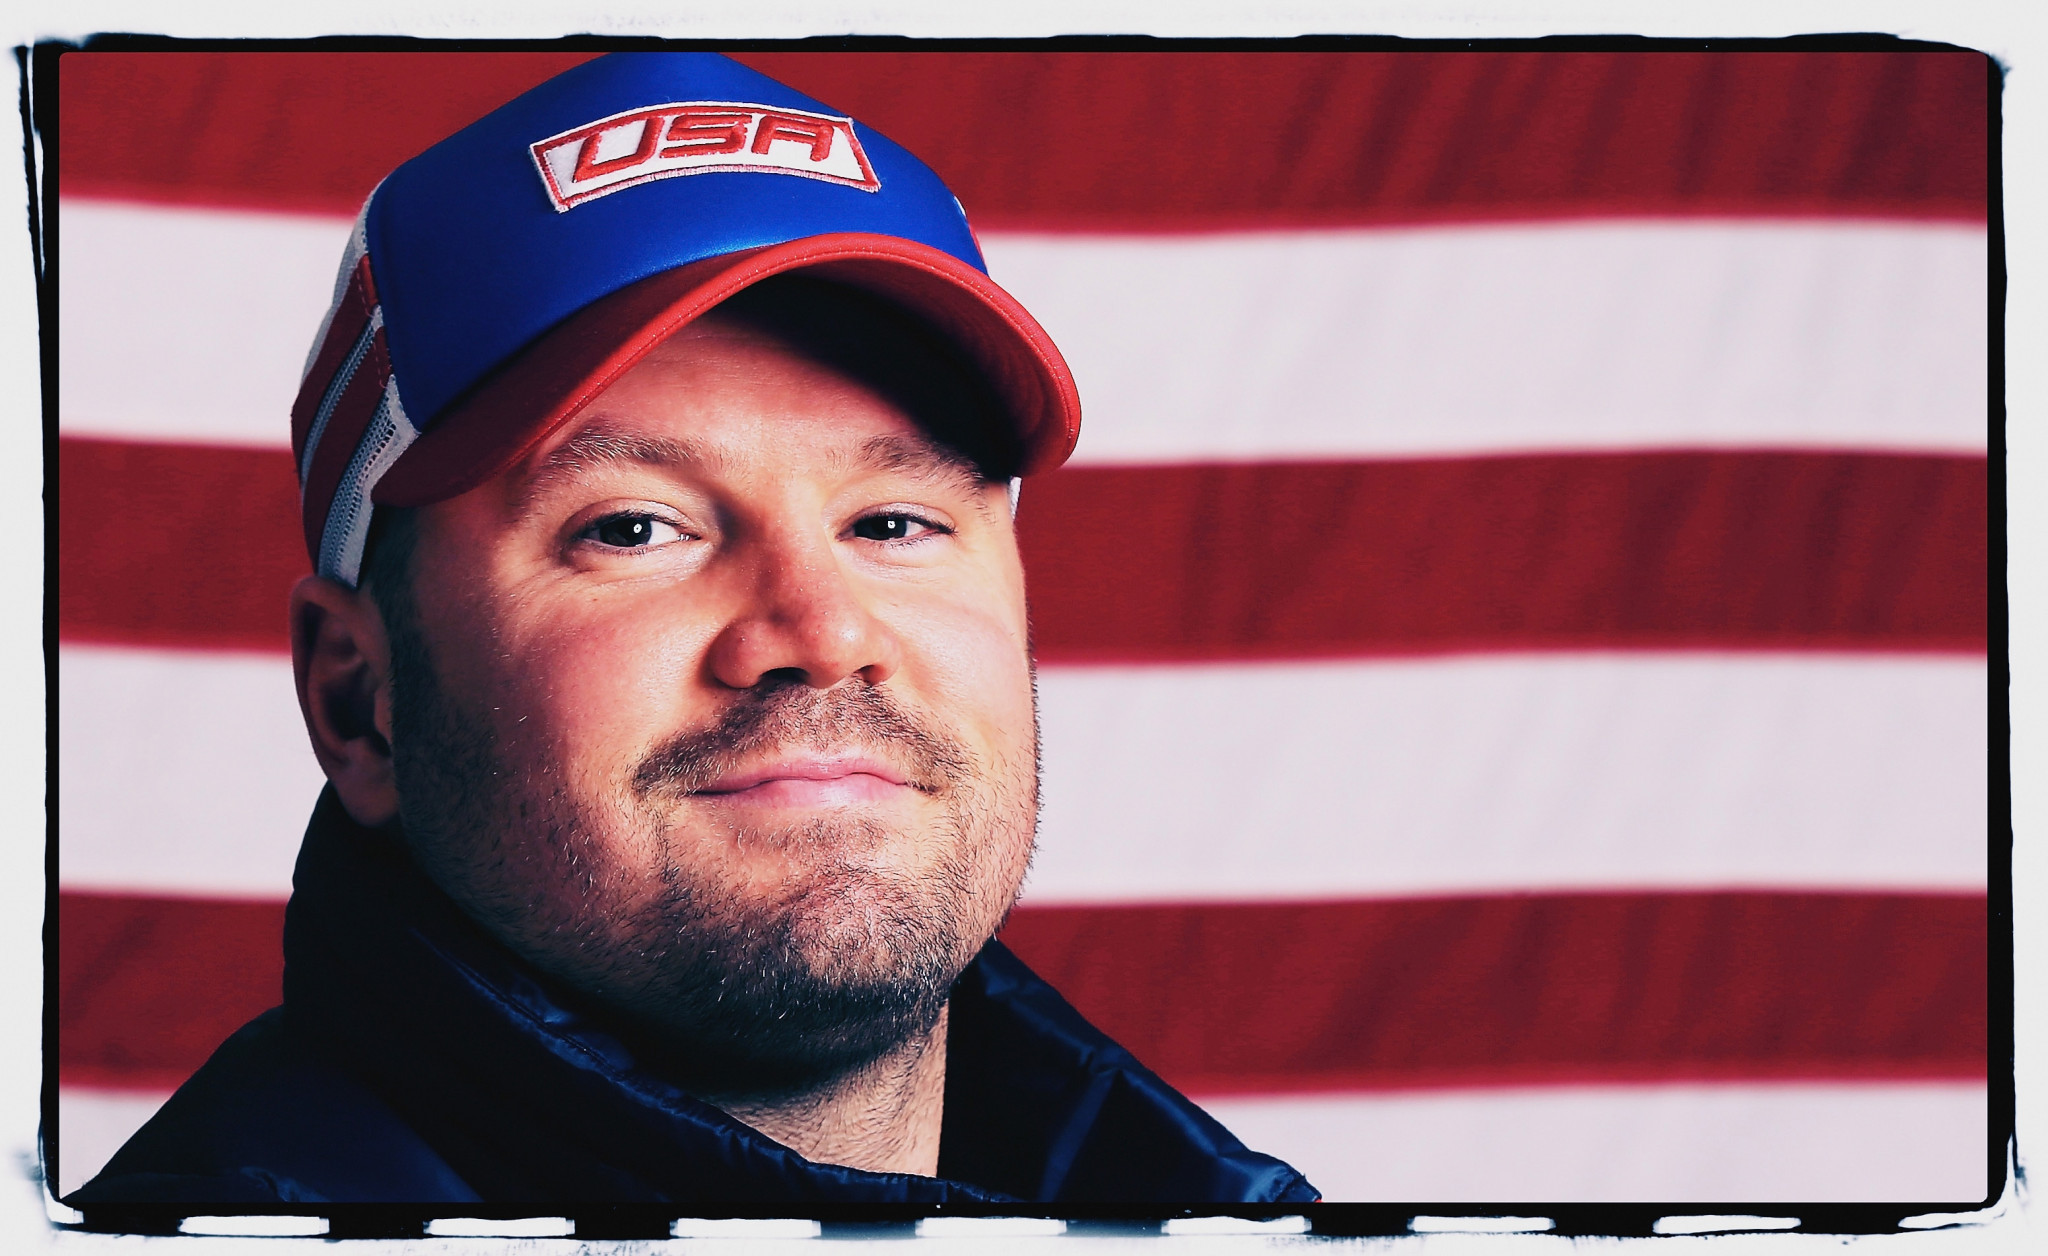 Late American bobsledder Holcomb officially upgraded to Olympic silver medals from Sochi 2014